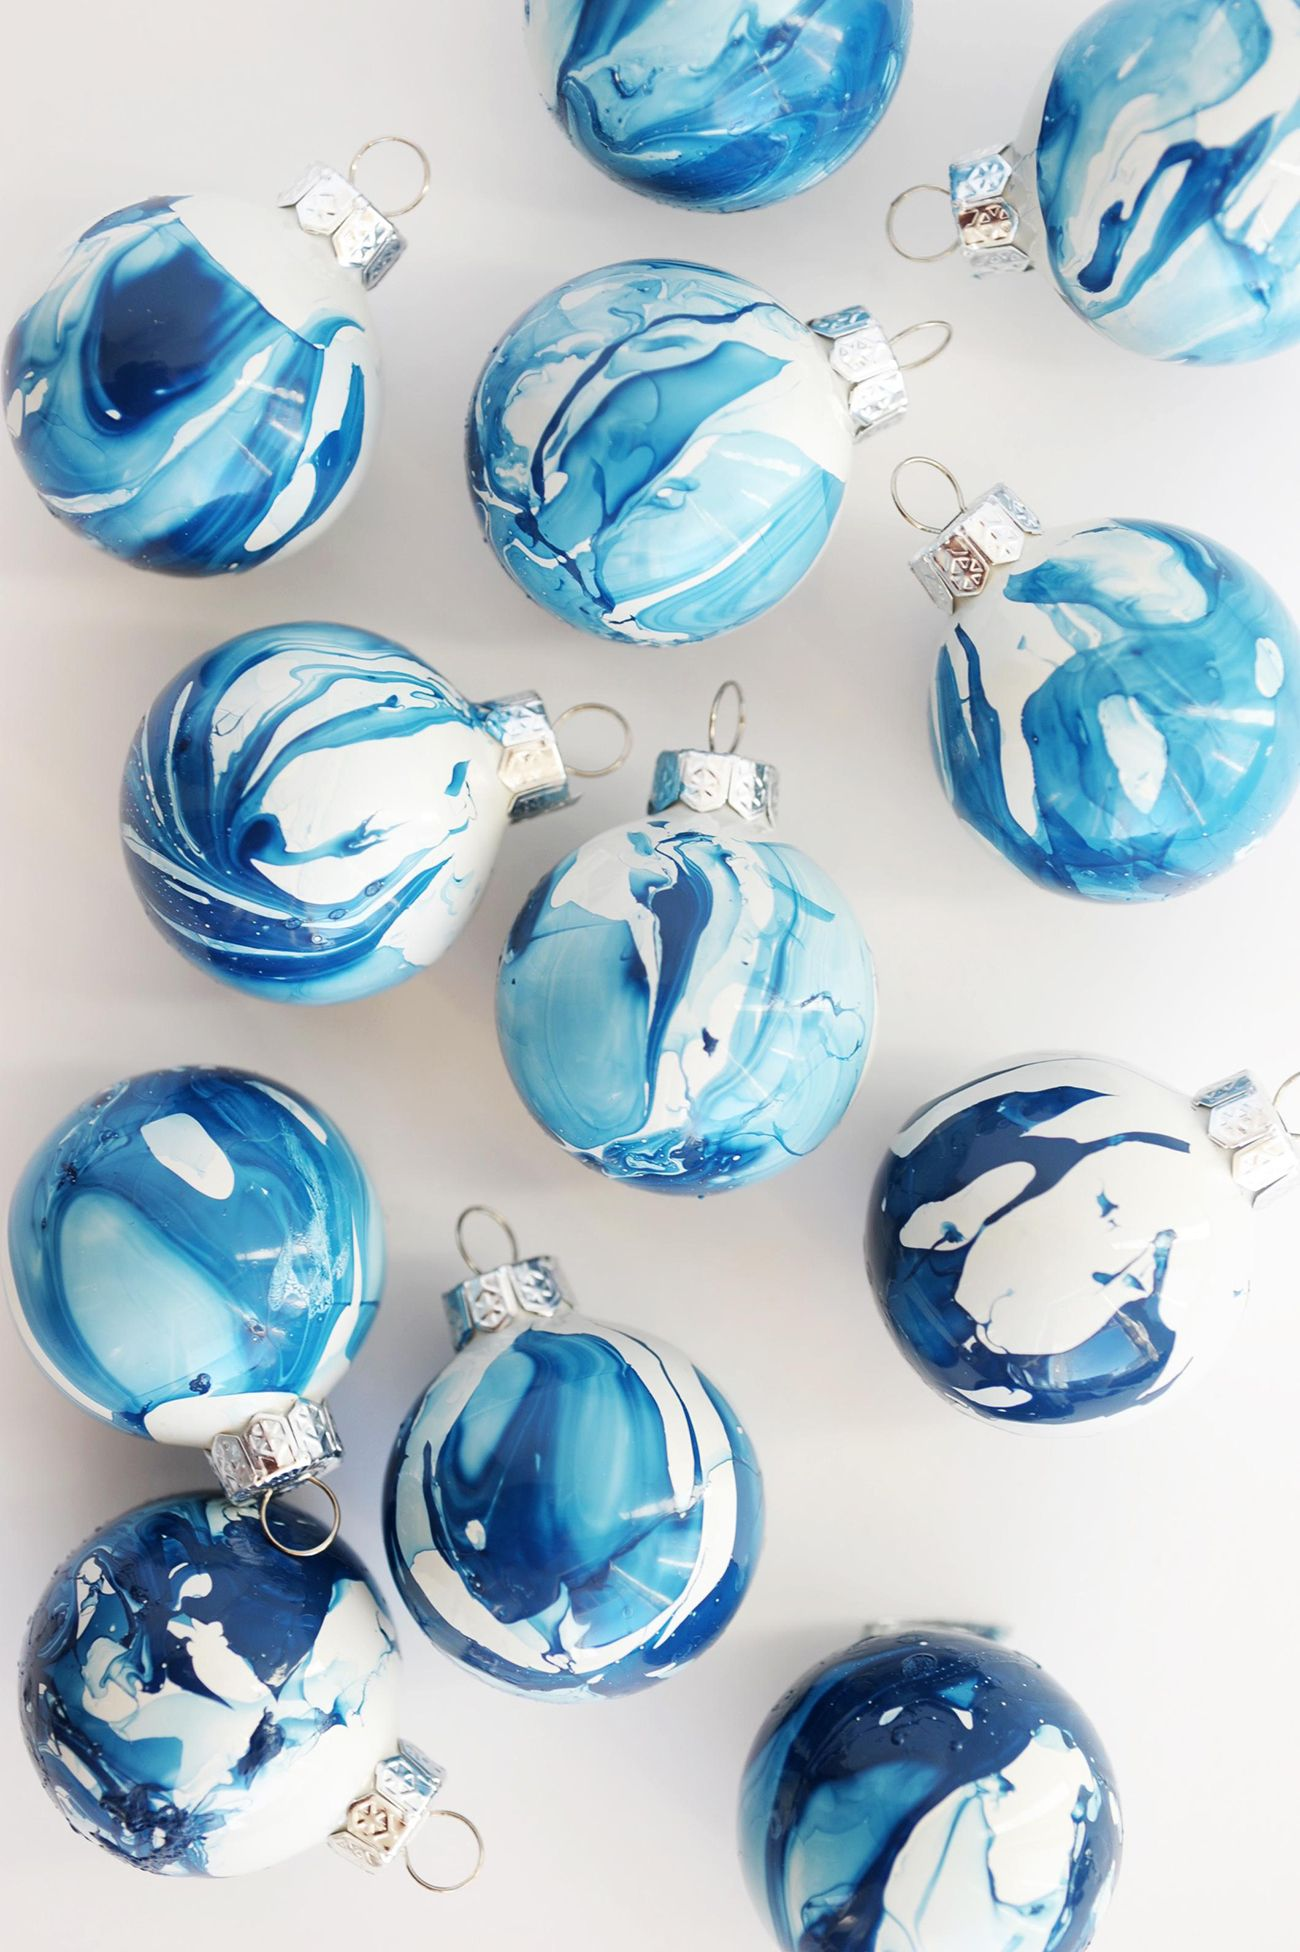 10 Gorgeous Homemade Ornaments You Can Make with Simple Glass Ornaments – The Sweetest Occasion